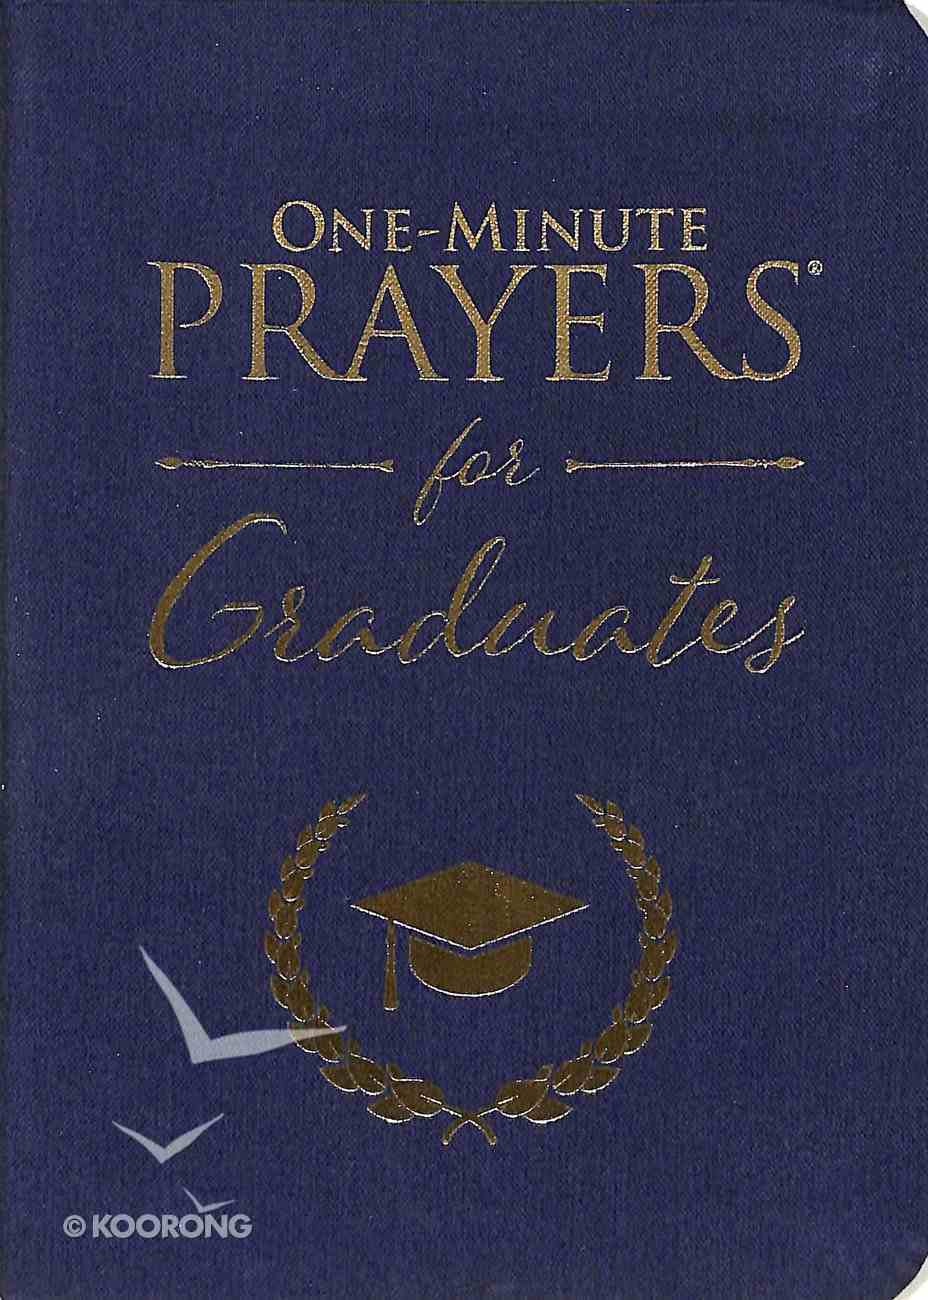 One-Minute Prayers For Graduates Imitation Leather